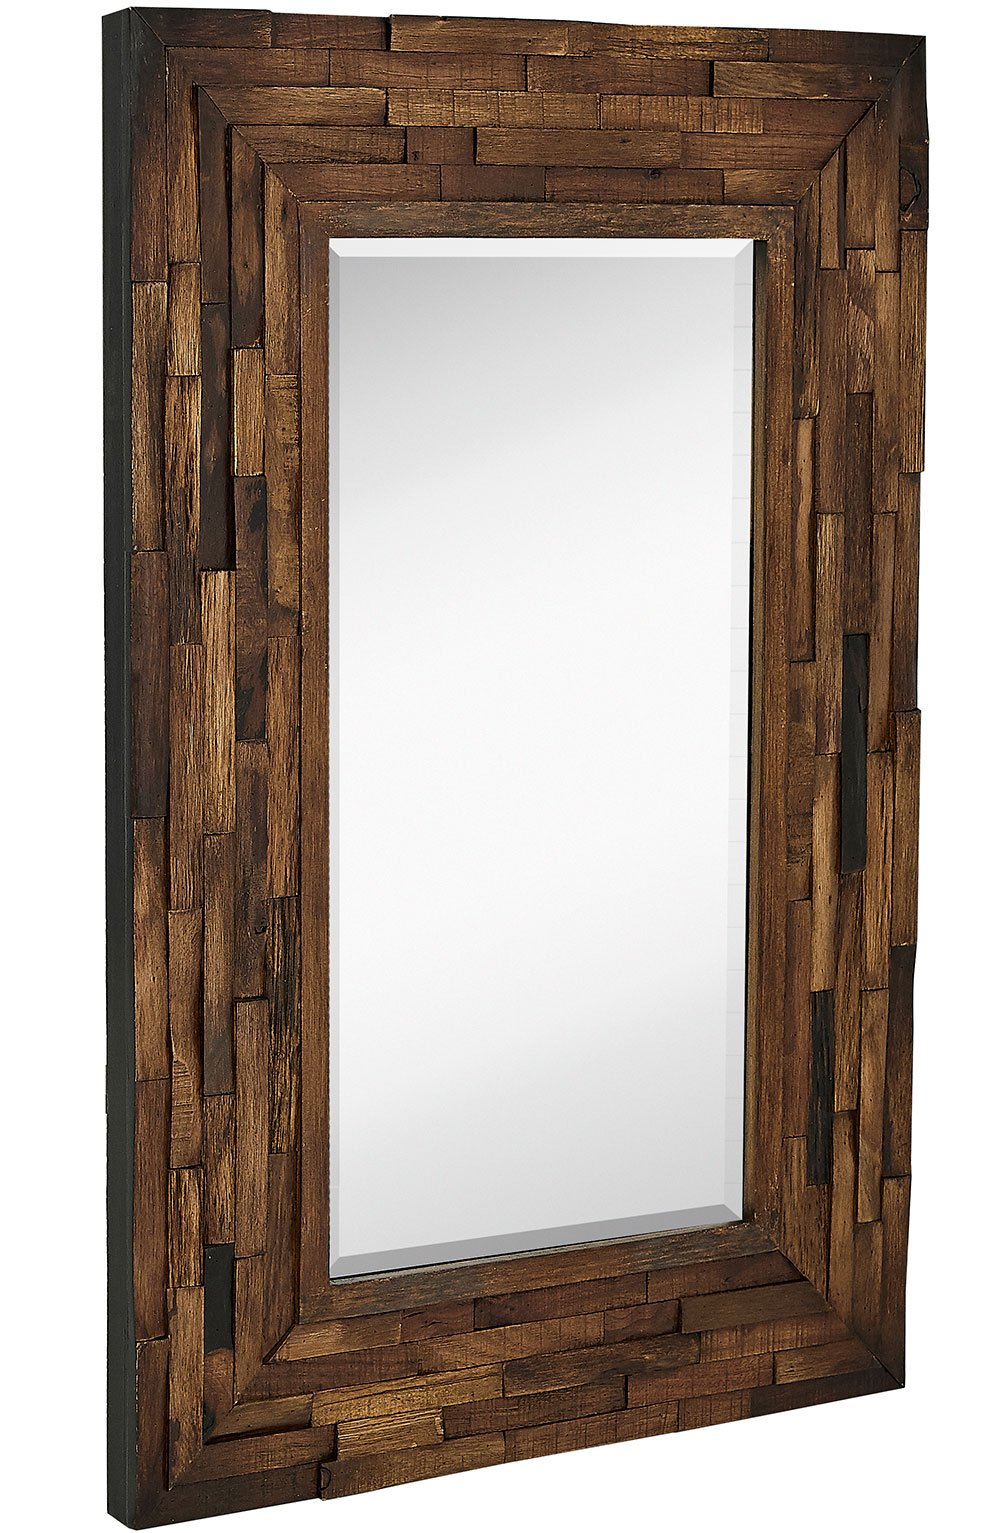 Rustic Natural Wood Framed Wall Mirror | Solid Construction Glass Wall Mirror | Vanity, Bedroom, or Bathroom | Hangs Horizontal or Vertical | 100% (24'' x 36'')